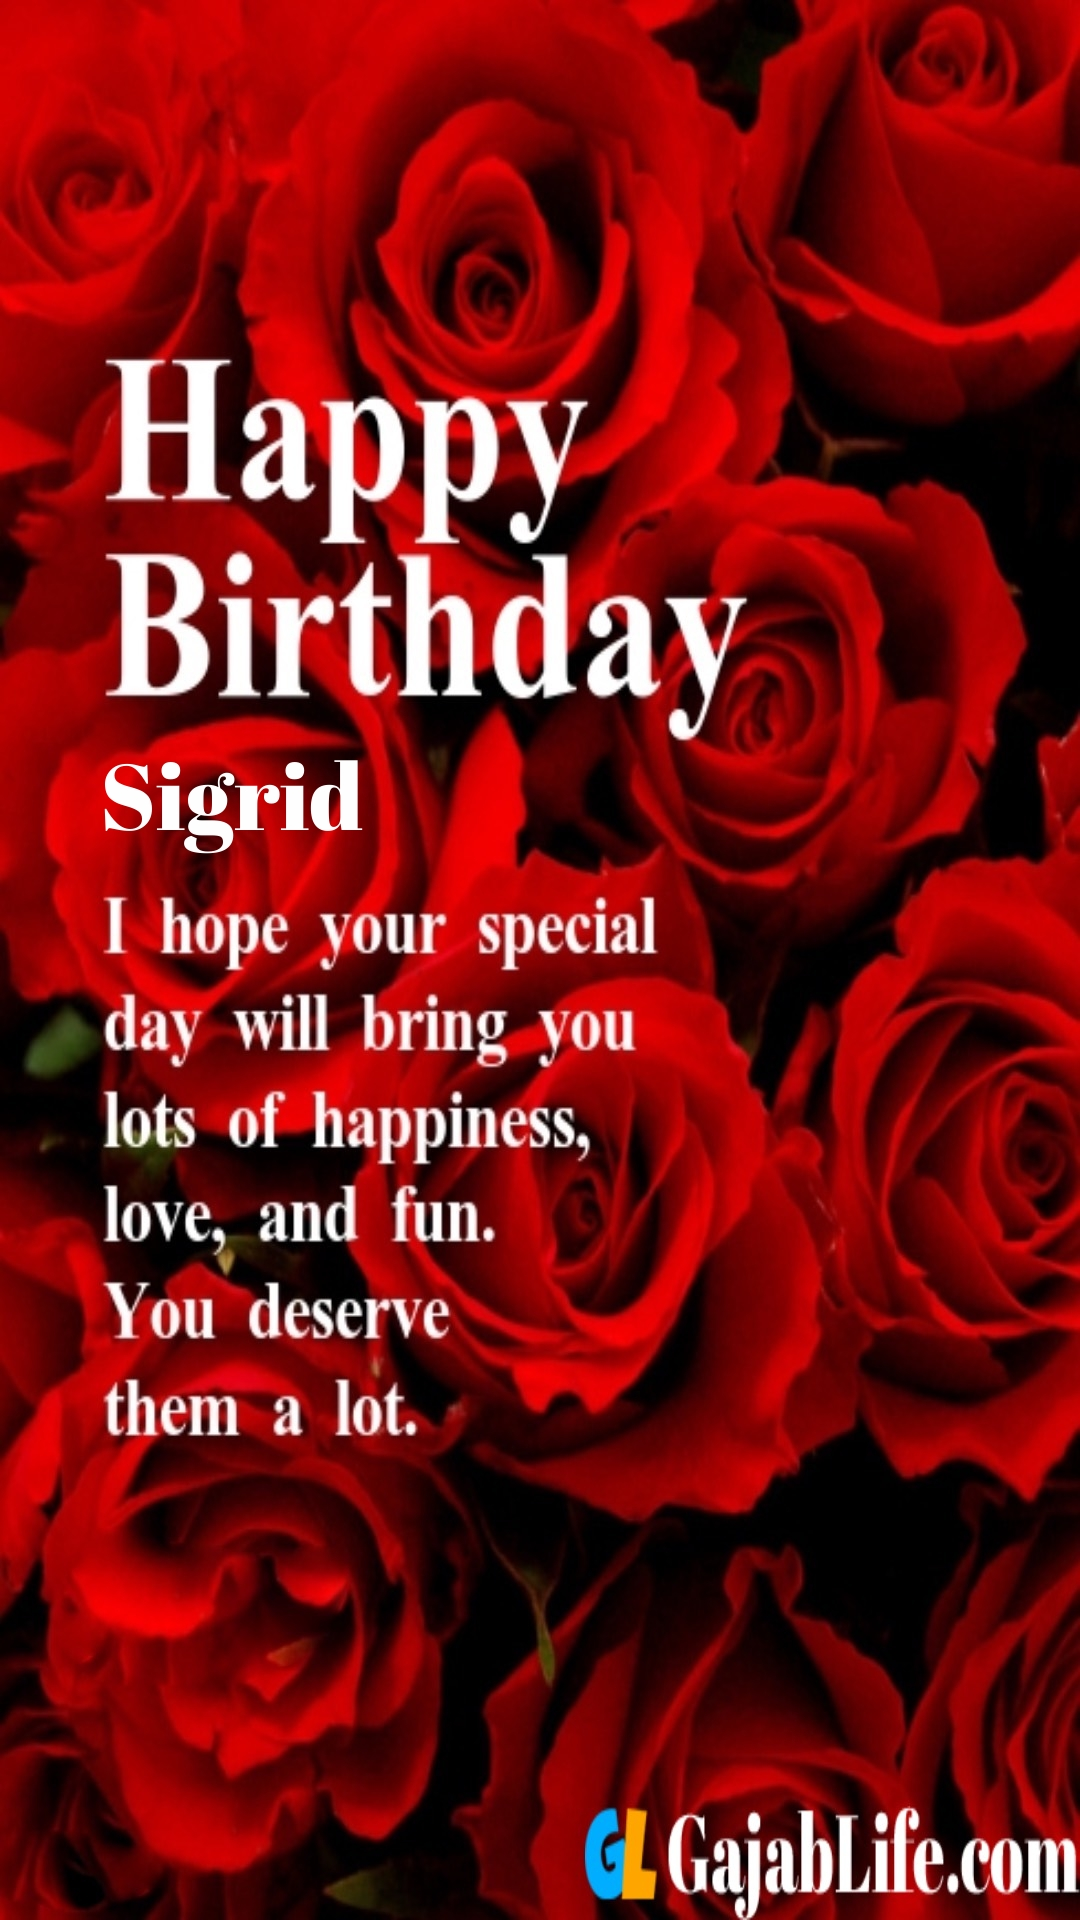 Sigrid birthday greeting card with rose & love